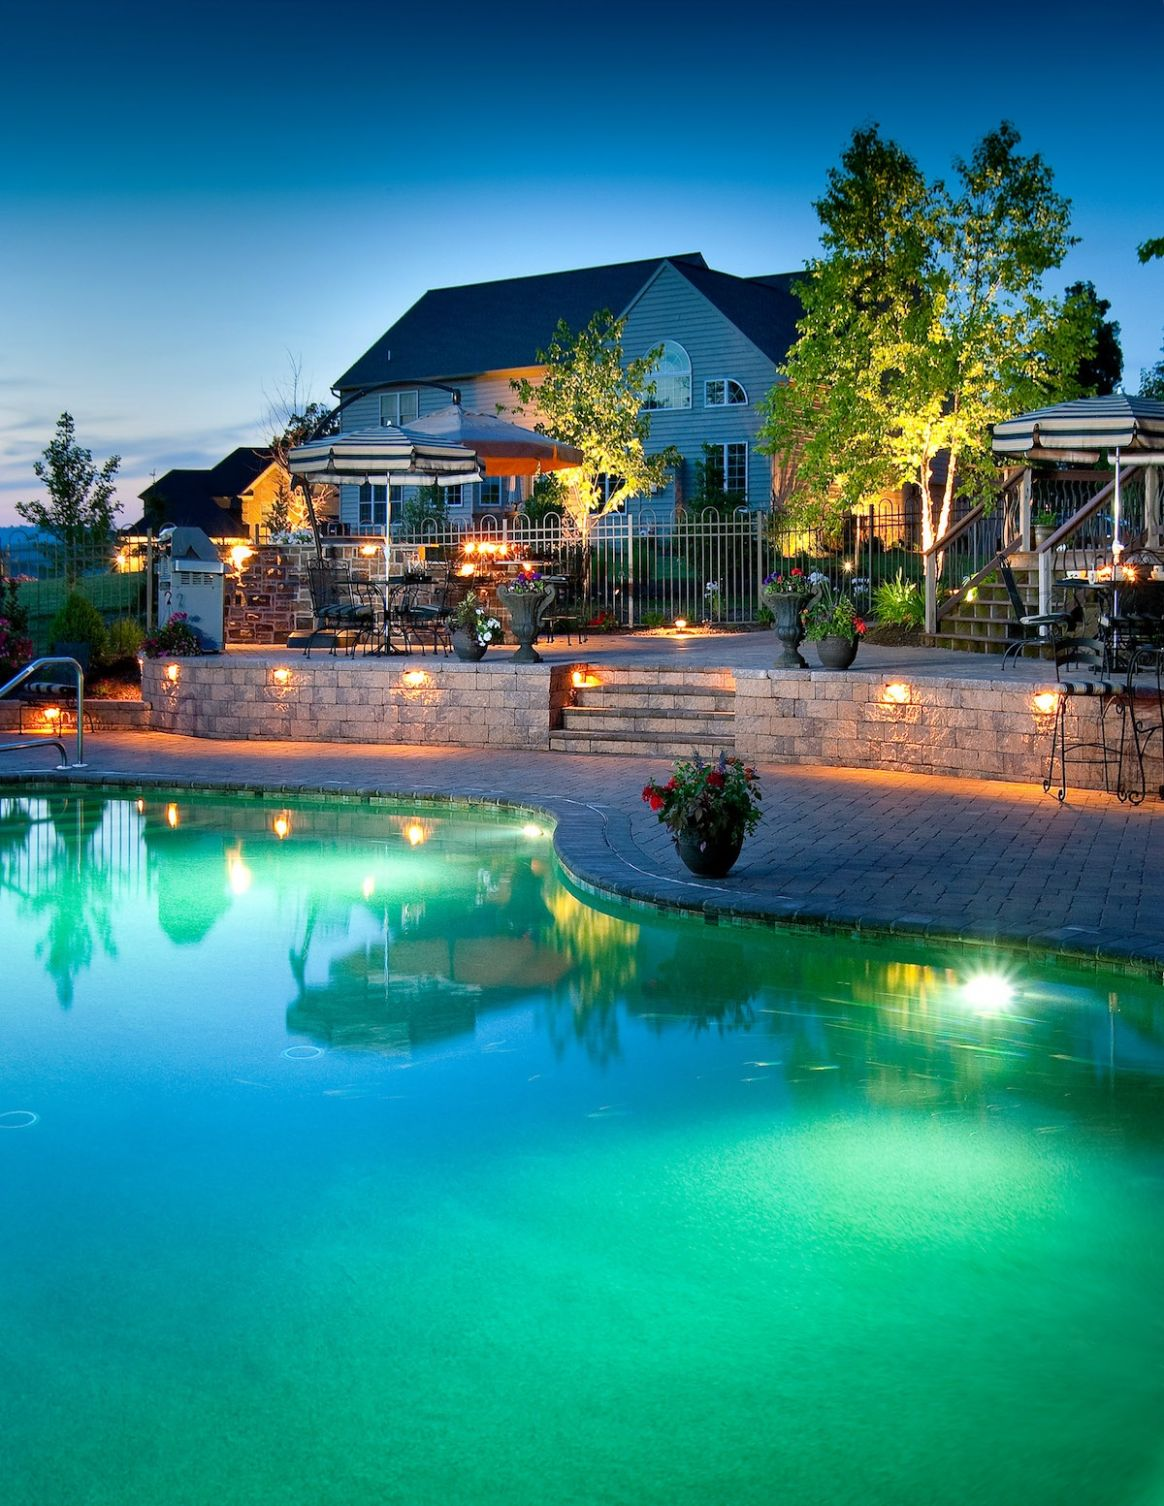 9 Great Landscape Lighting Ideas for Trees, Pools, Walkways, and More - pool lighting ideas